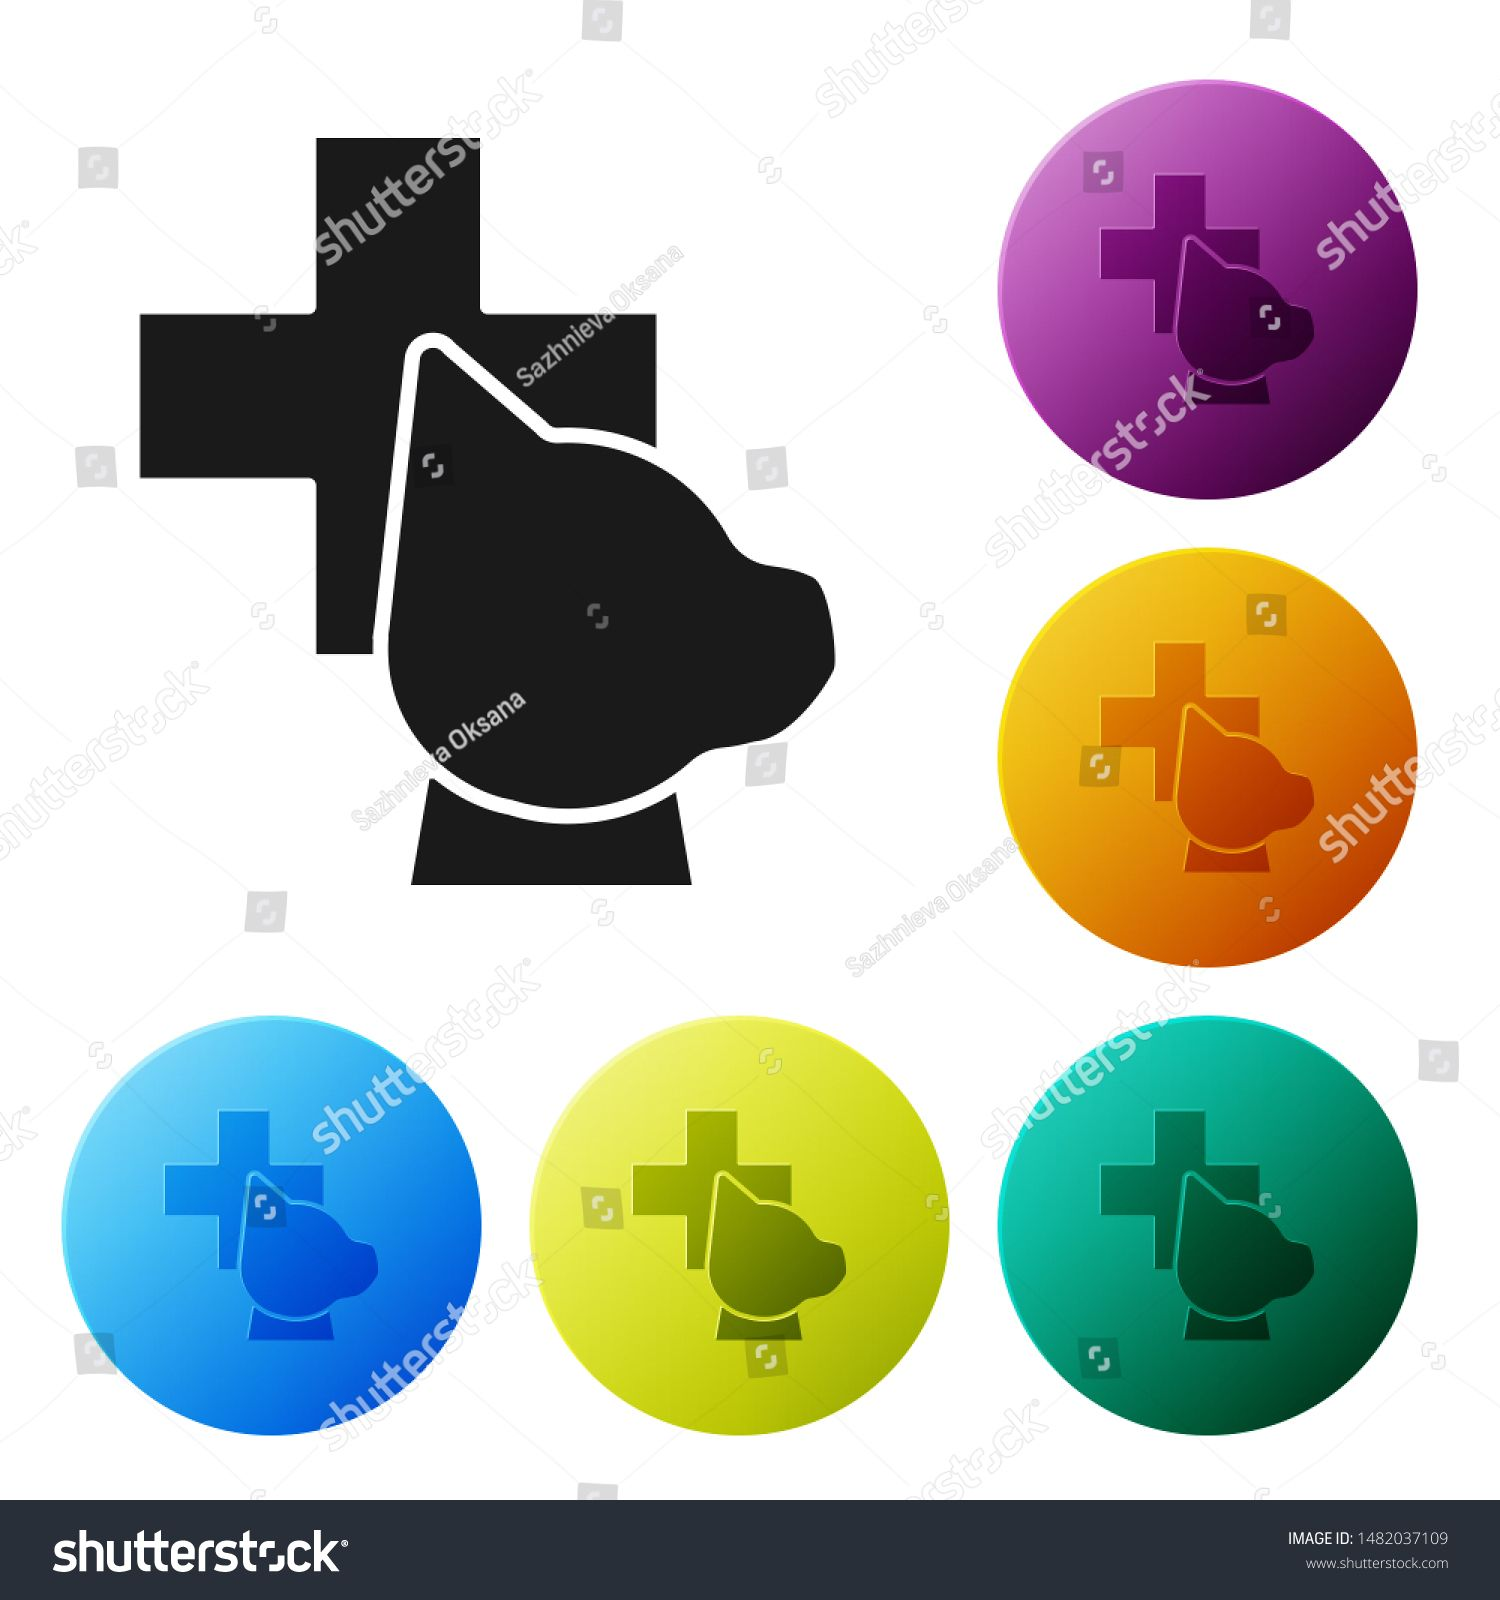 Black Veterinary clinic symbol icon isolated on white